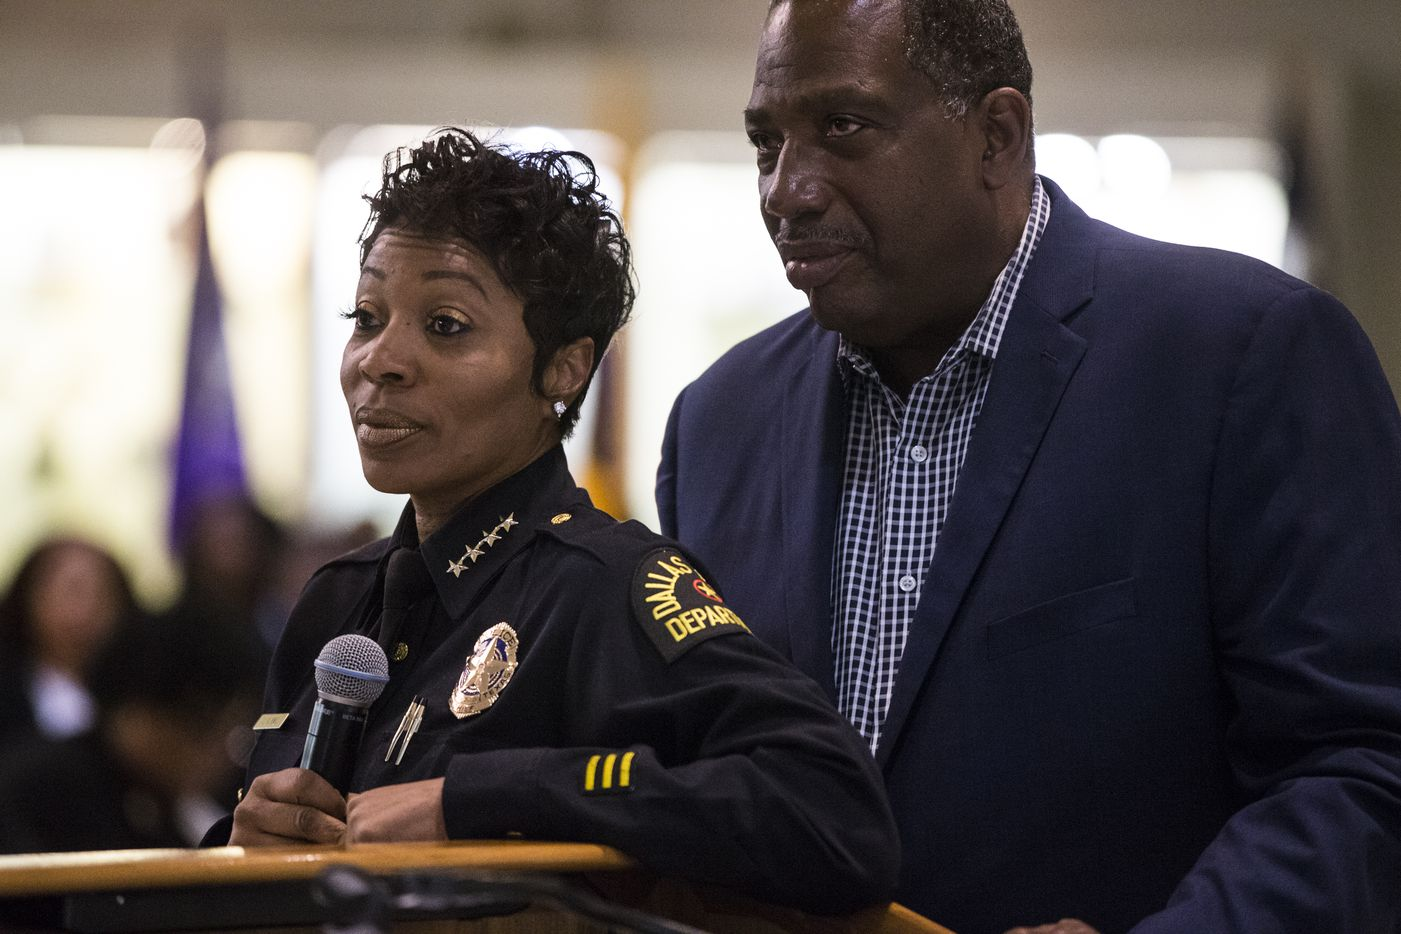 Dallas Police Chief U. Renee Hall and State Senator Royce West listen as people ask questions regarding Botham Shem Jean following an African American Leadership summit on Saturday, September 8, 2018 at Paul Quinn College in Dallas. Jean was shot by a Dallas police officer in his home on Thursday night.